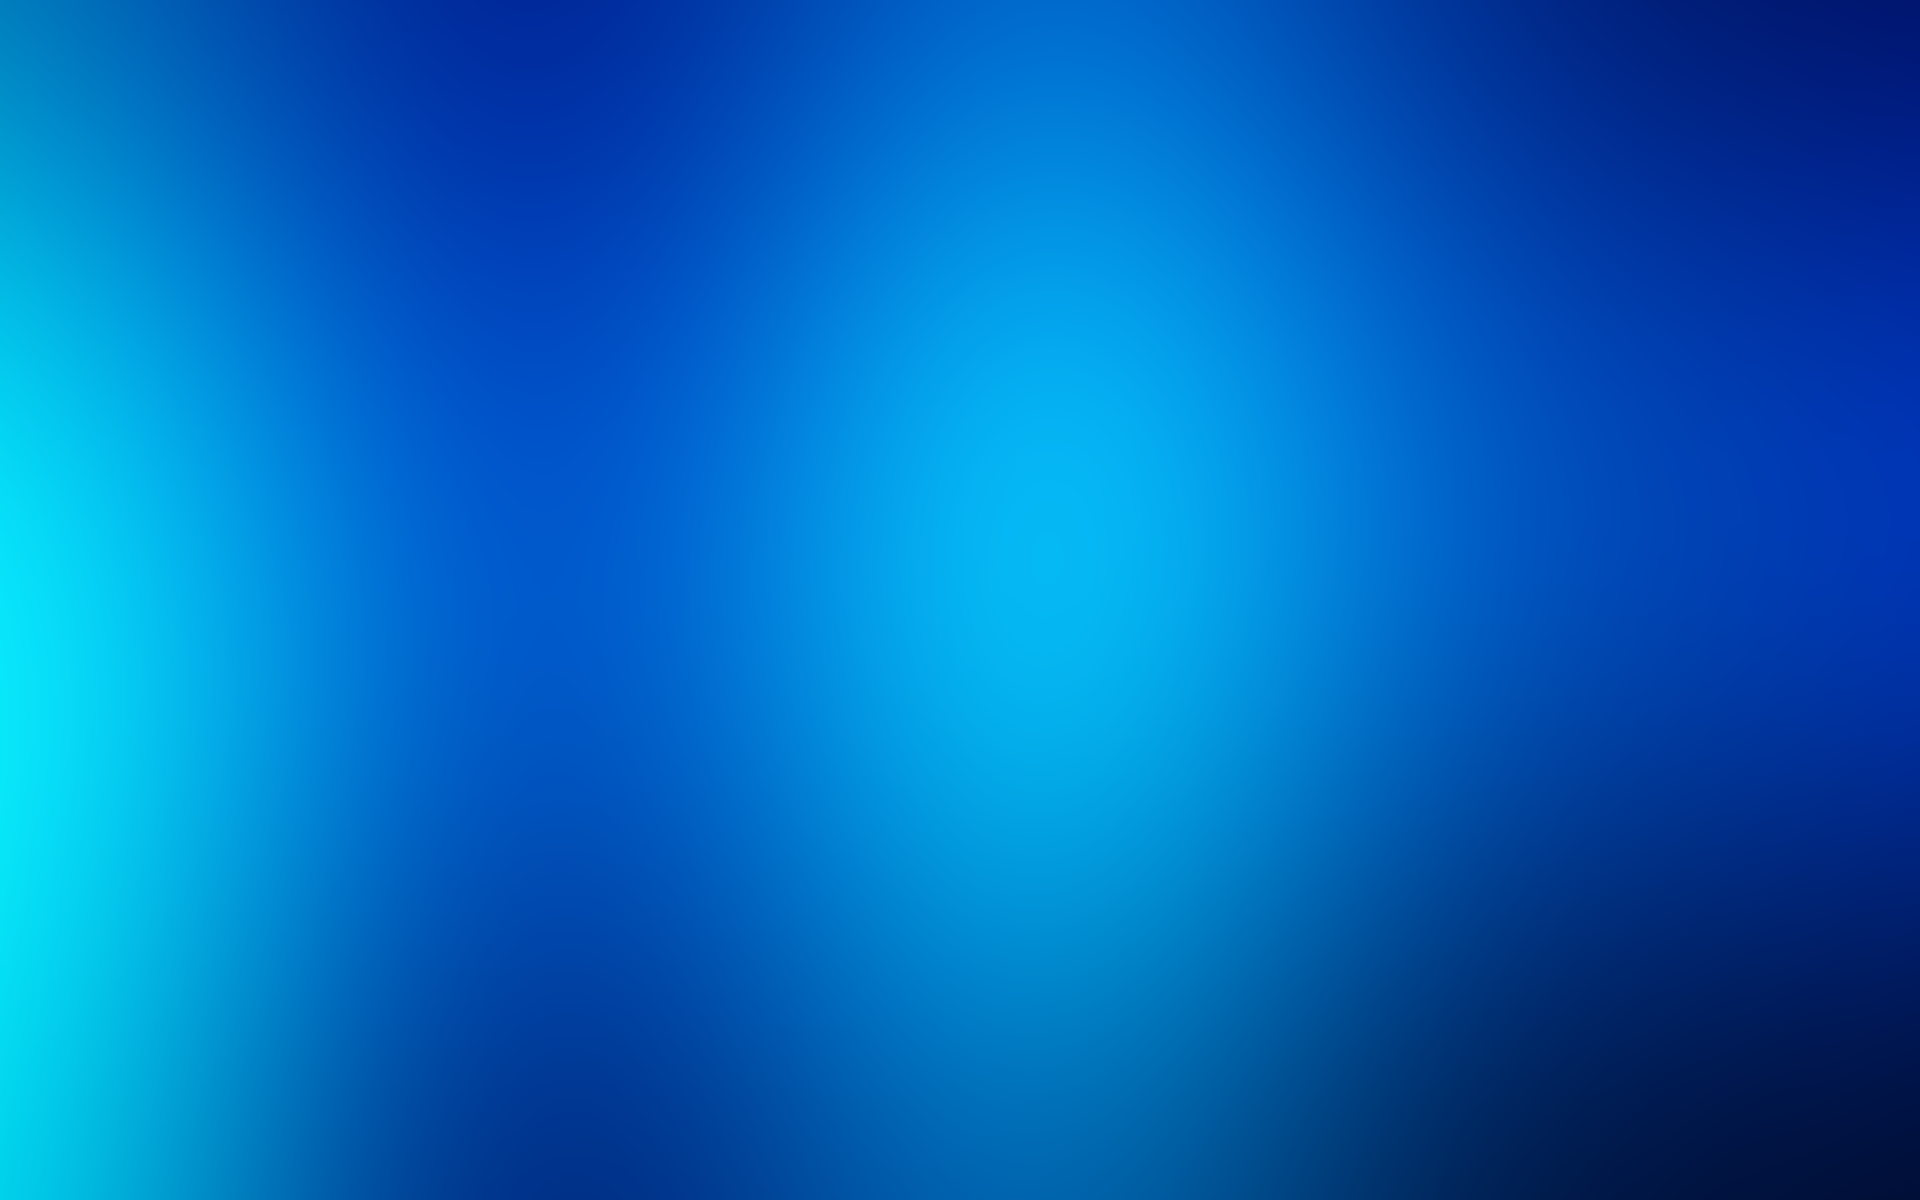 Blue backgrounds gradient wallpaper background 1920x1200